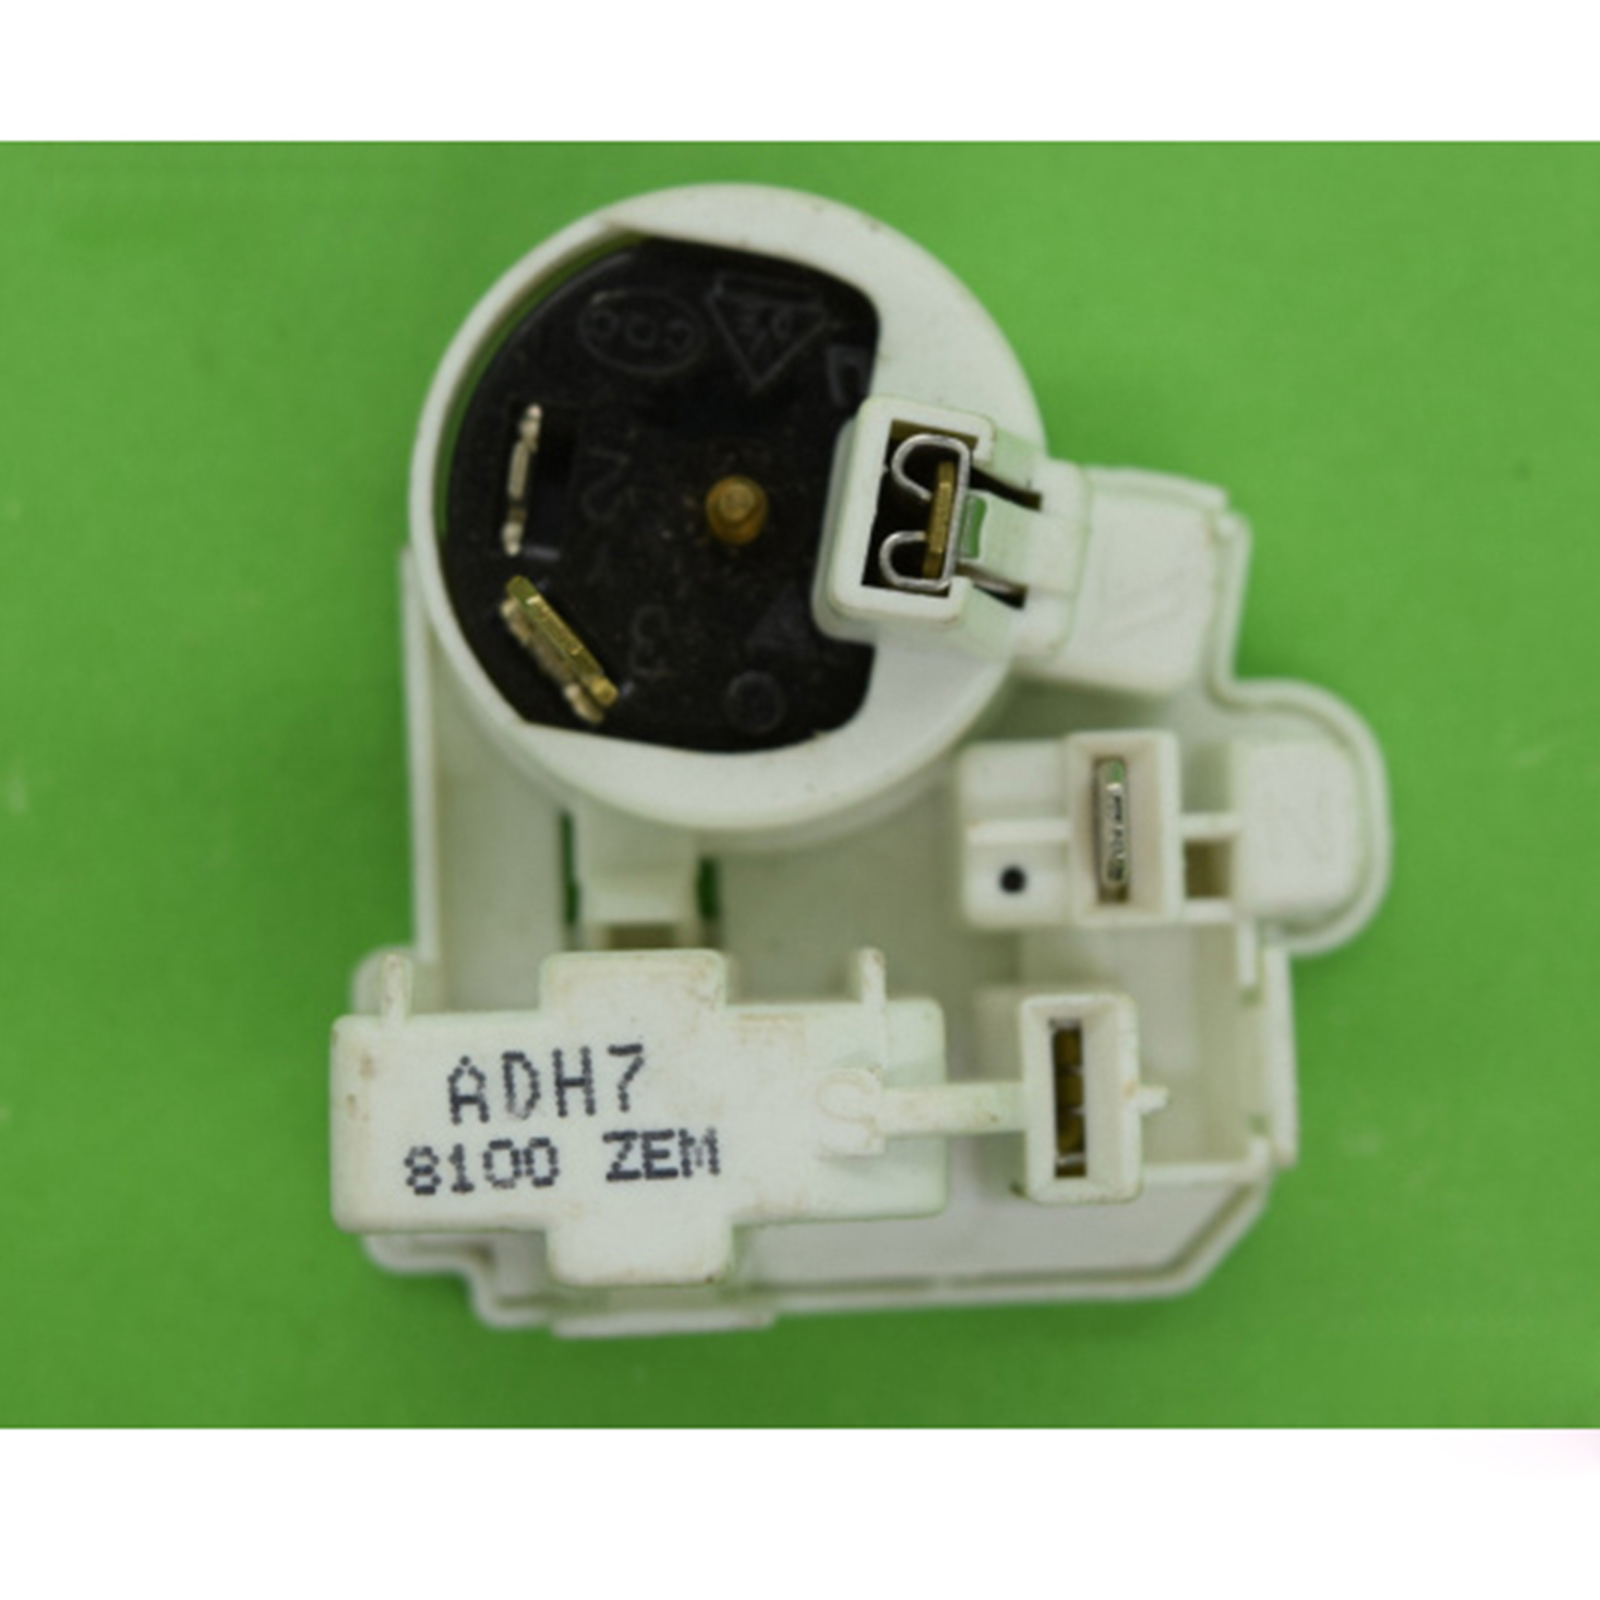 1pc Refrigerator Start 8100ZEM90-130-74 Refrigerator Compressor Combination PTC Starter Refrigerators Accessories